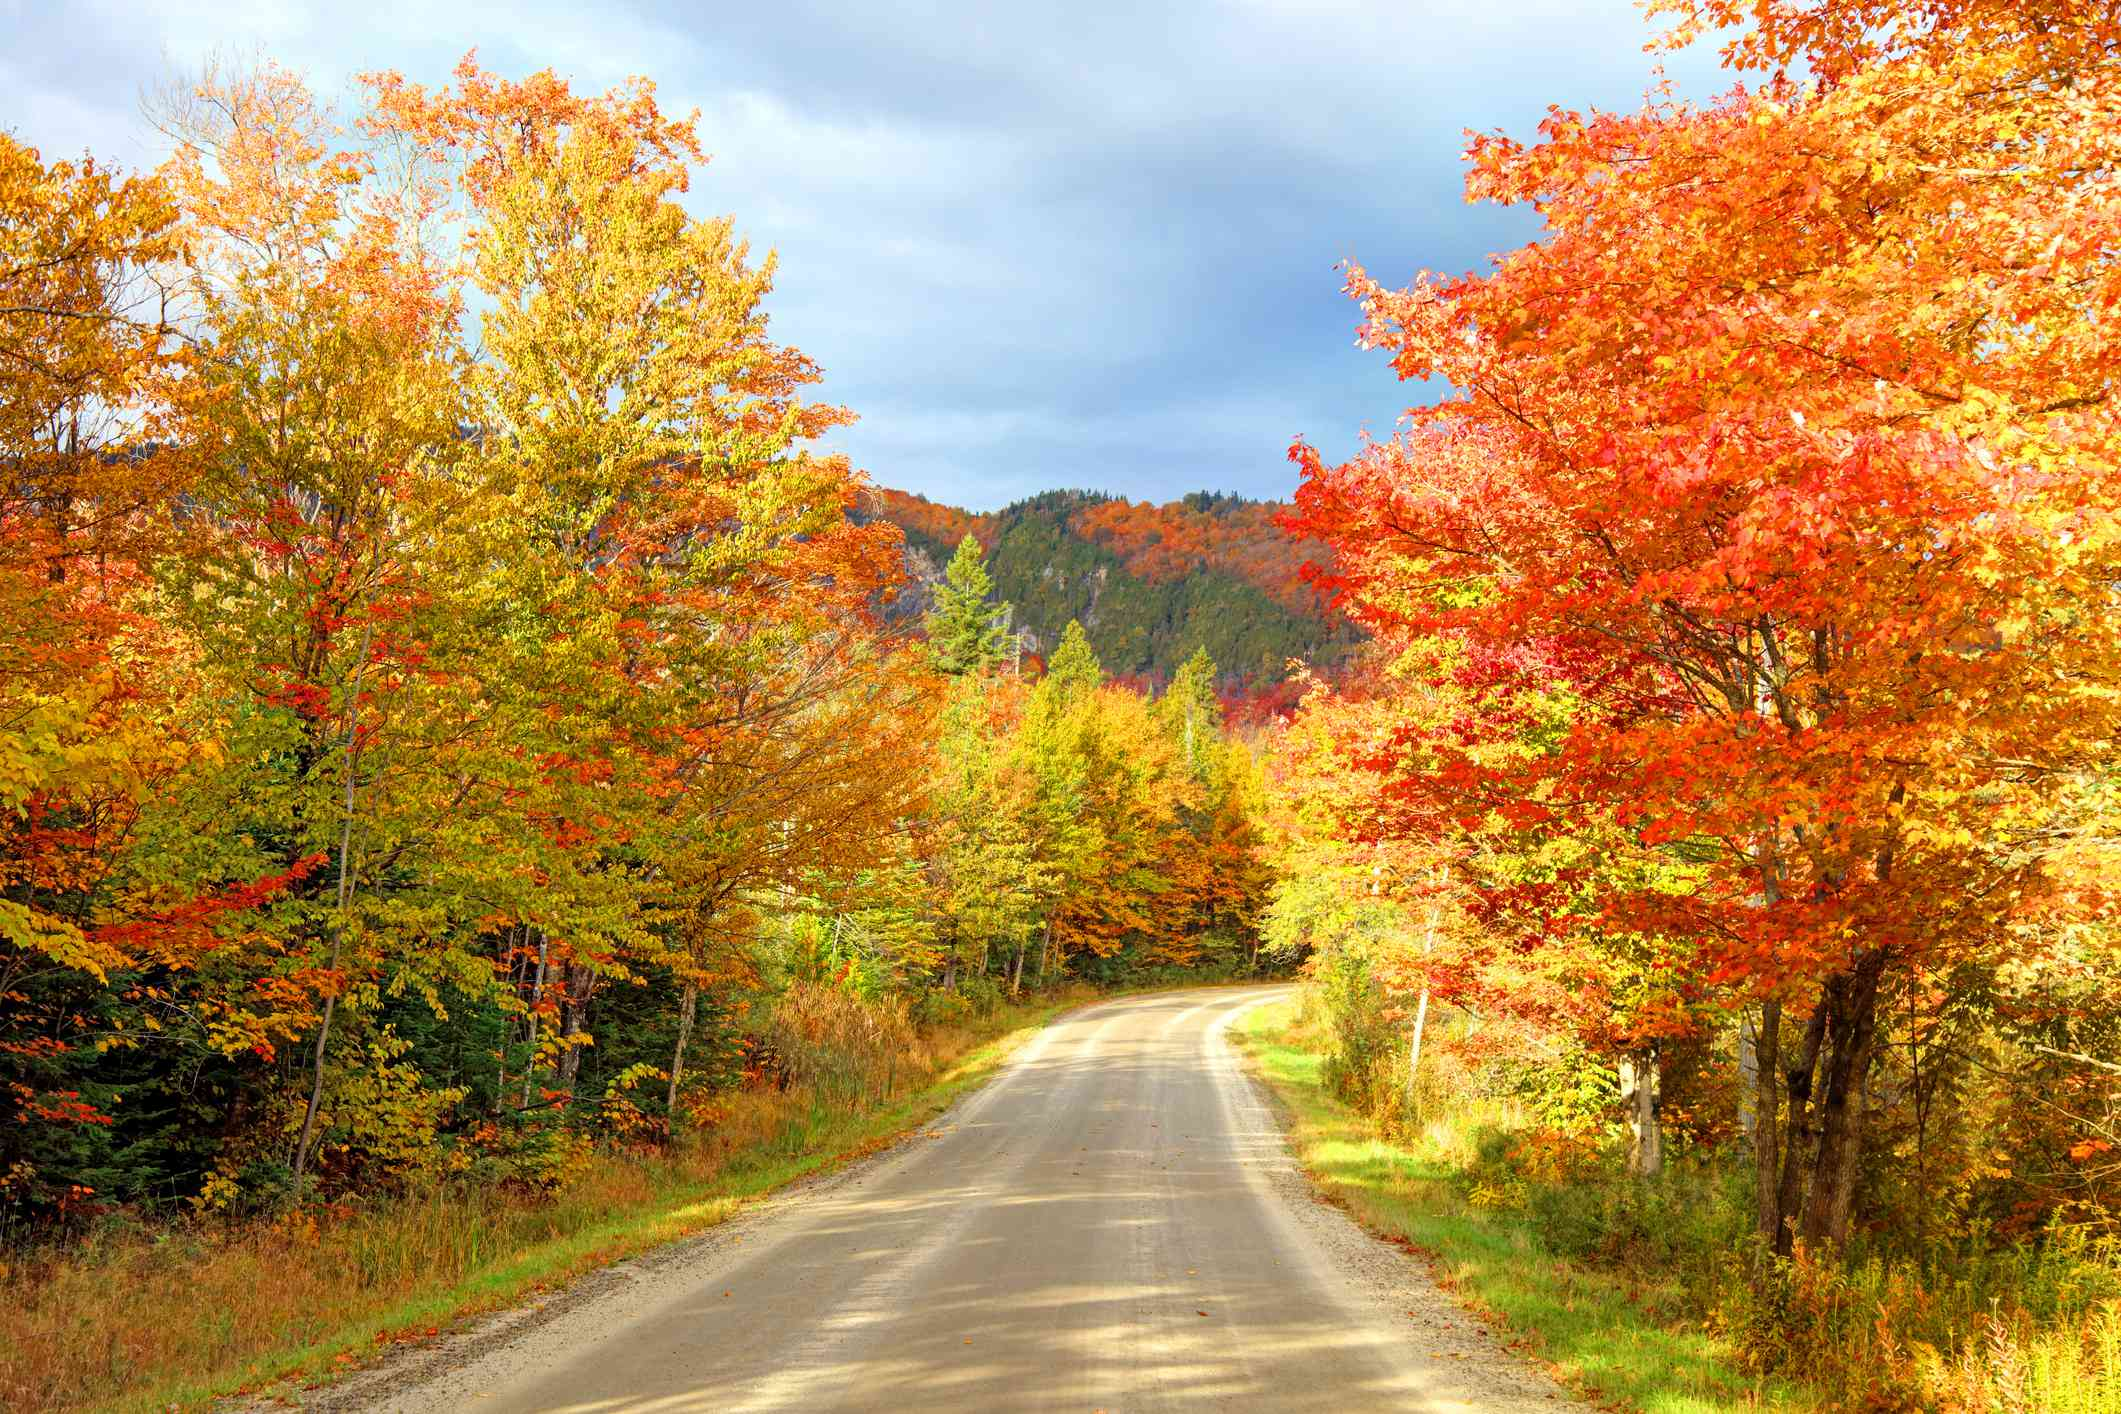 Autumn road in the Northeast Kingdom of Vermont